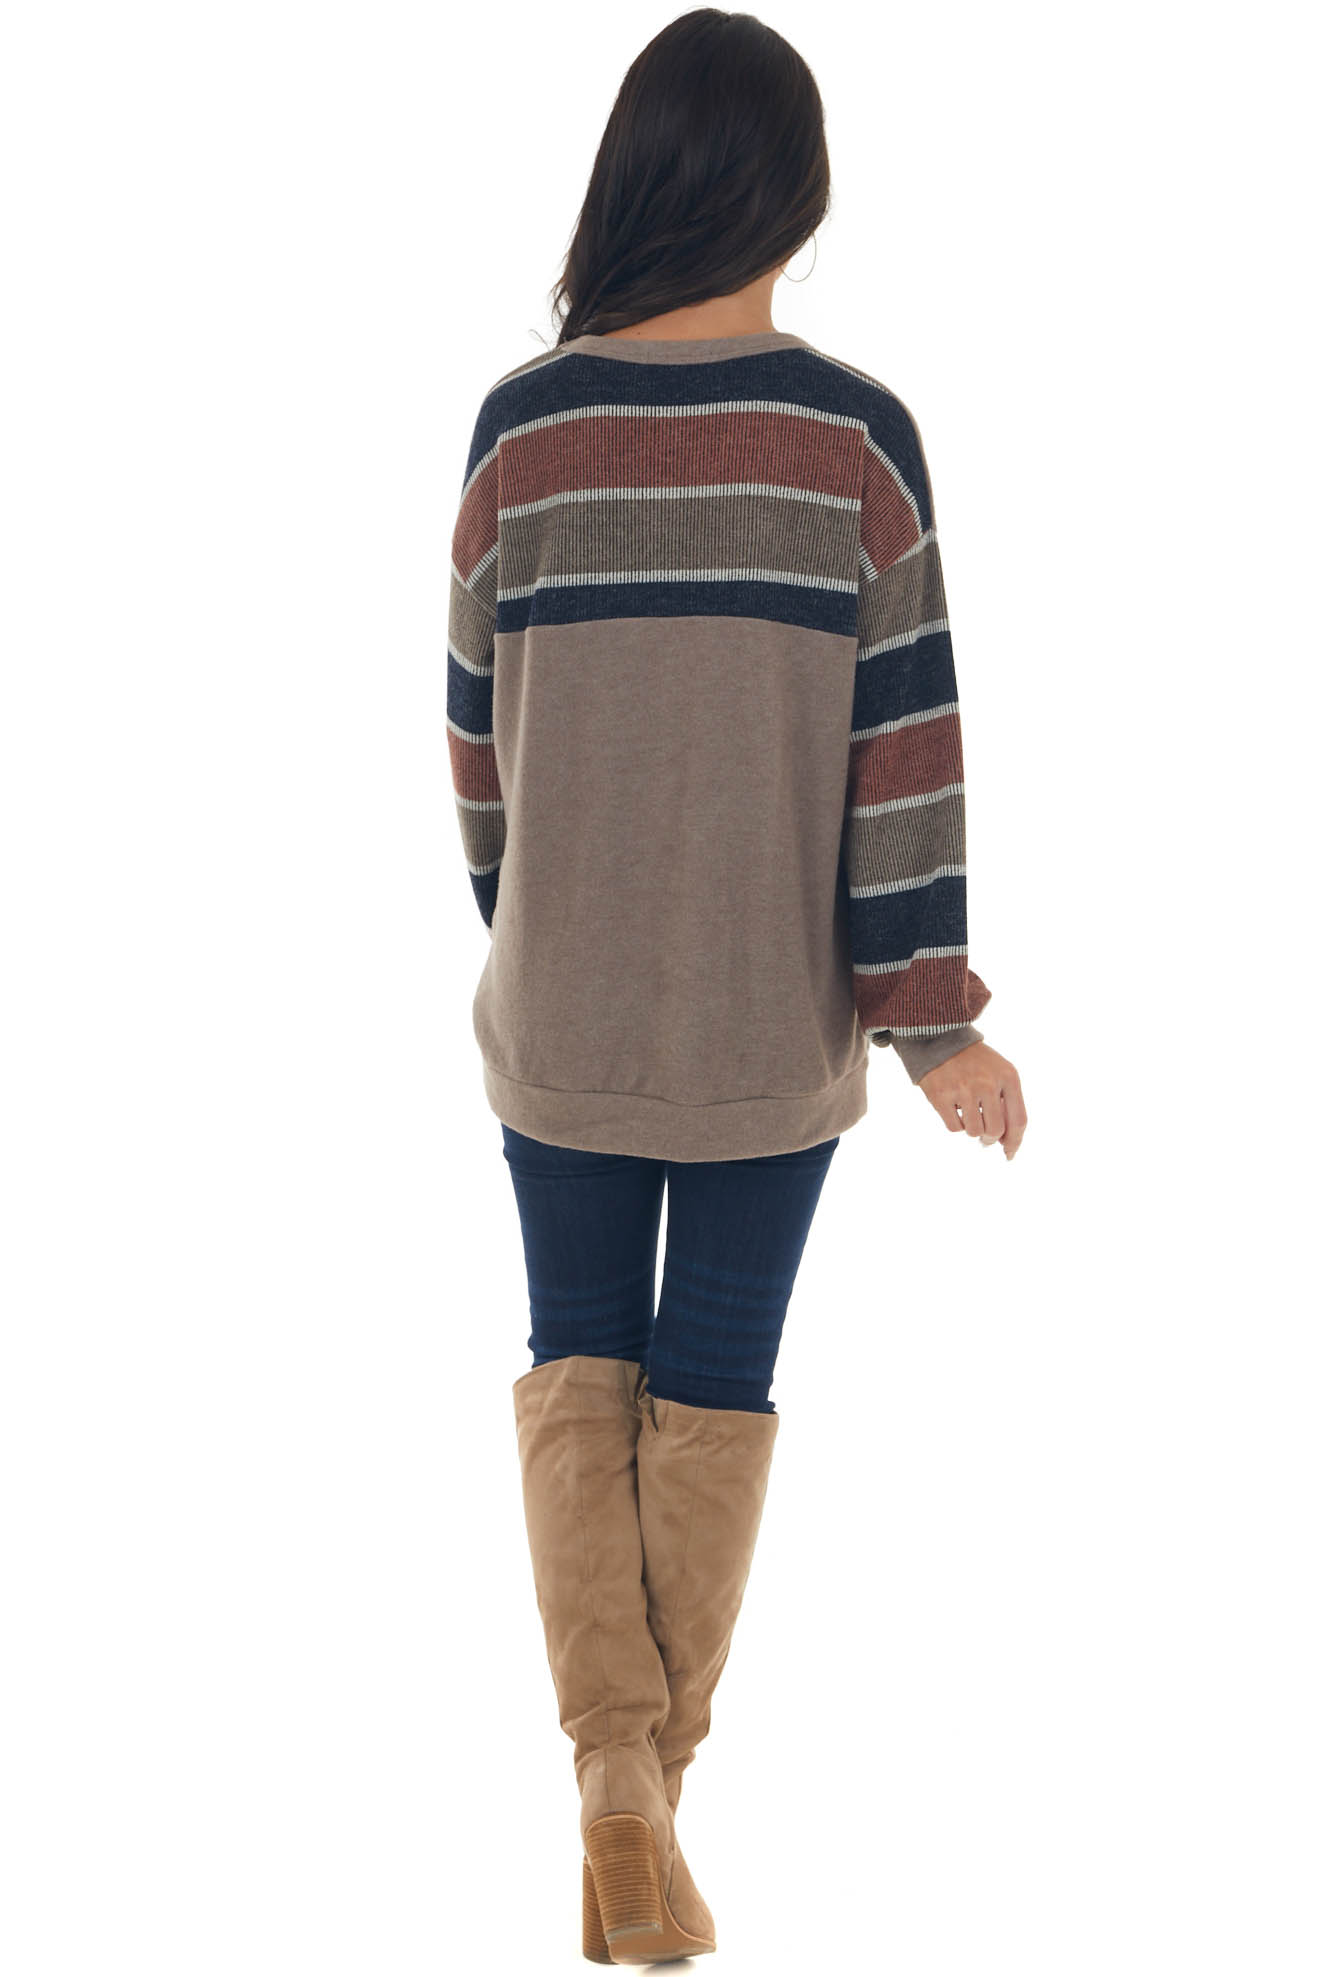 Taupe Striped Top with Exposed Stitching Detail